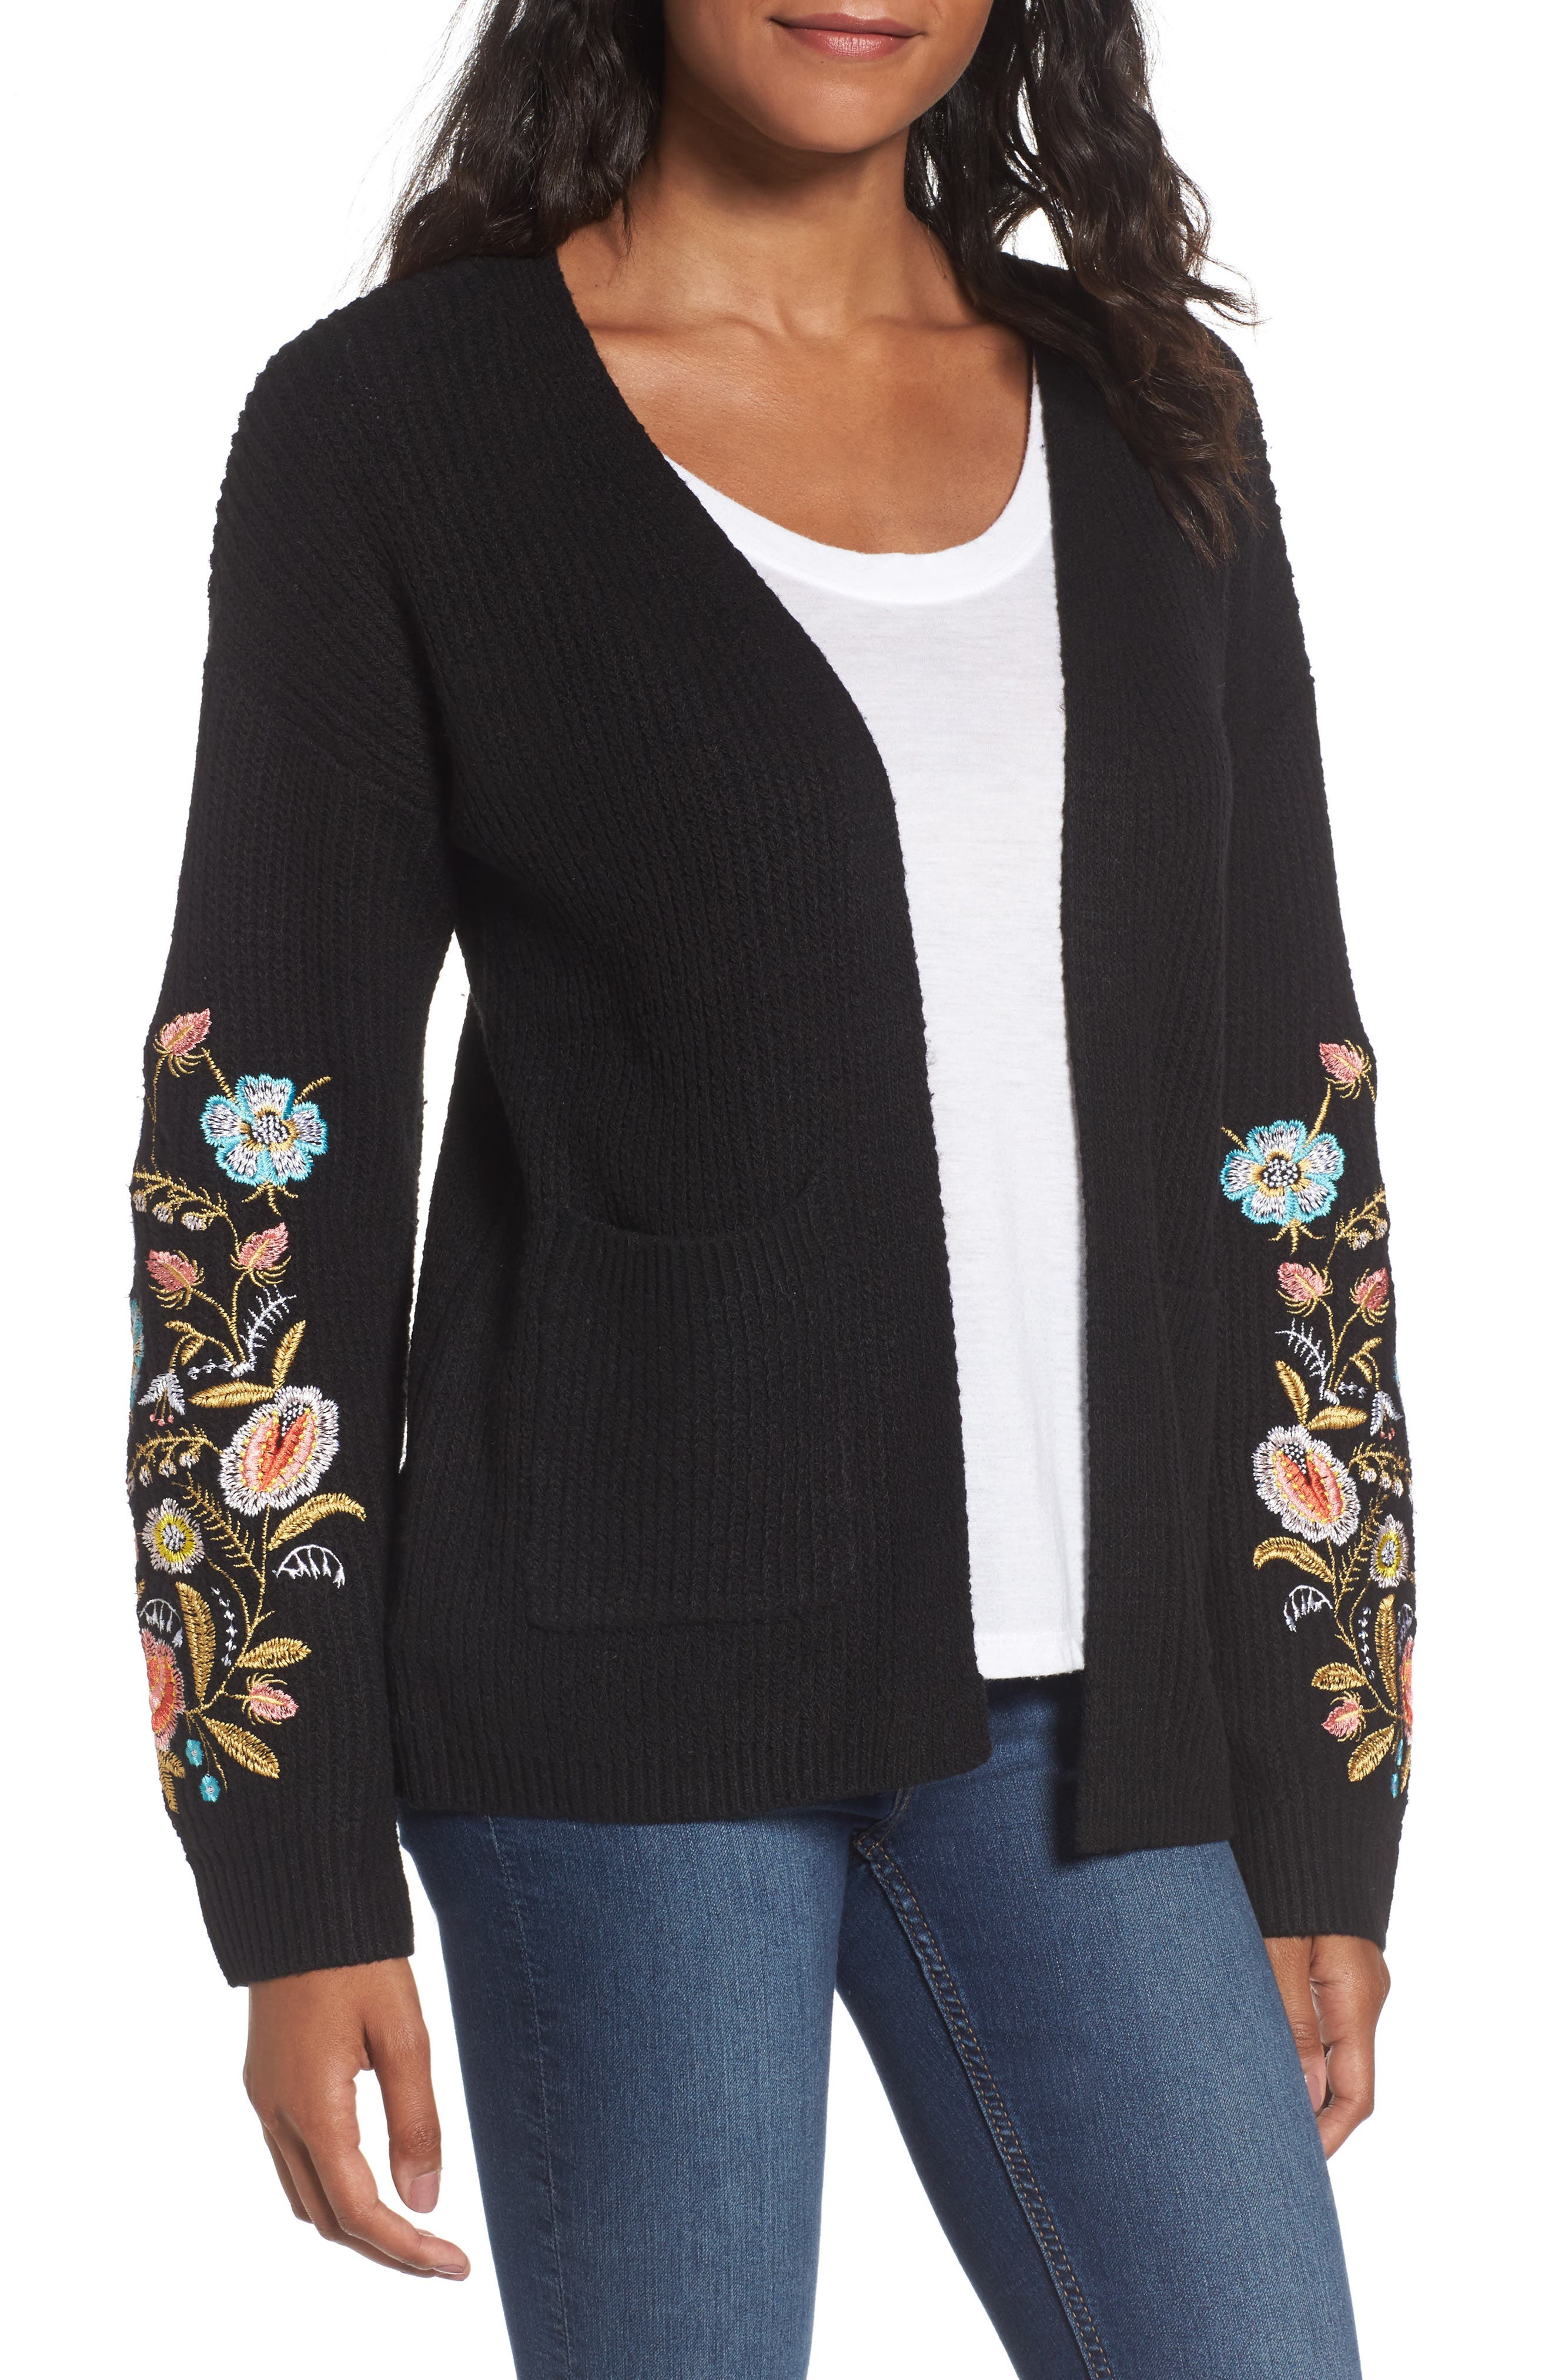 Main Image - Woven Heart Embroidered Cardigan